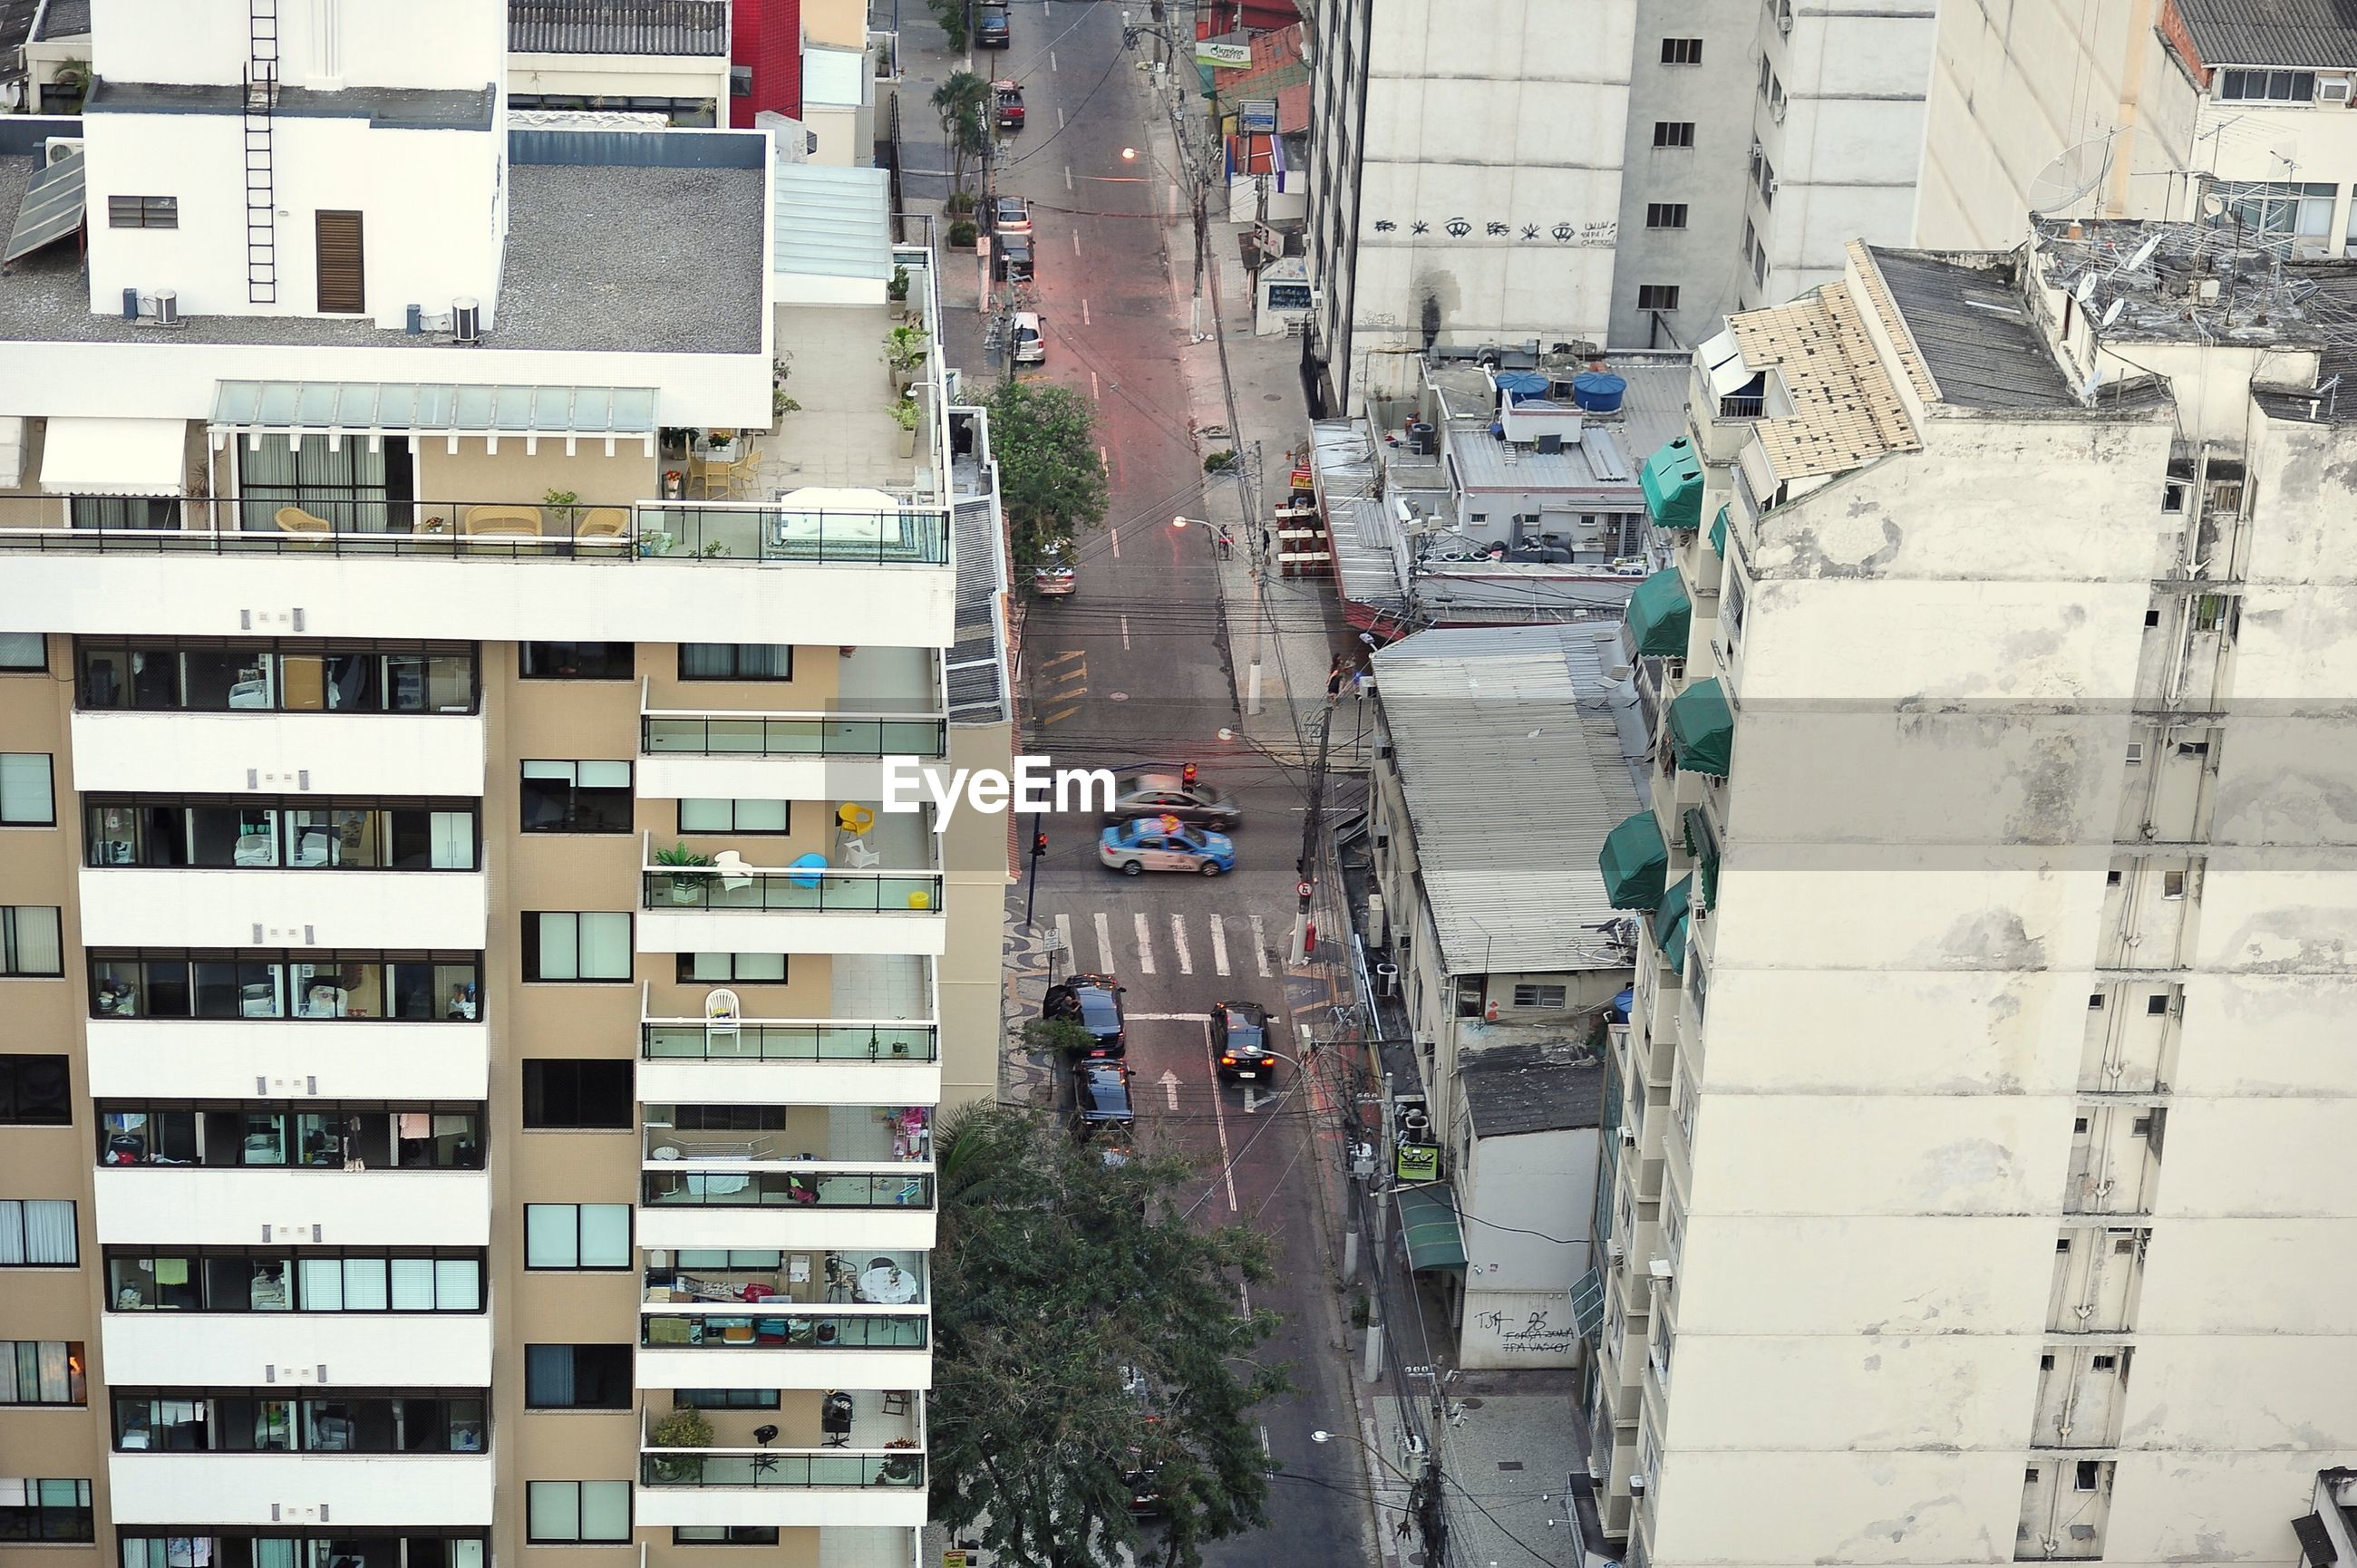 High angle view of cars on road amidst residential buildings